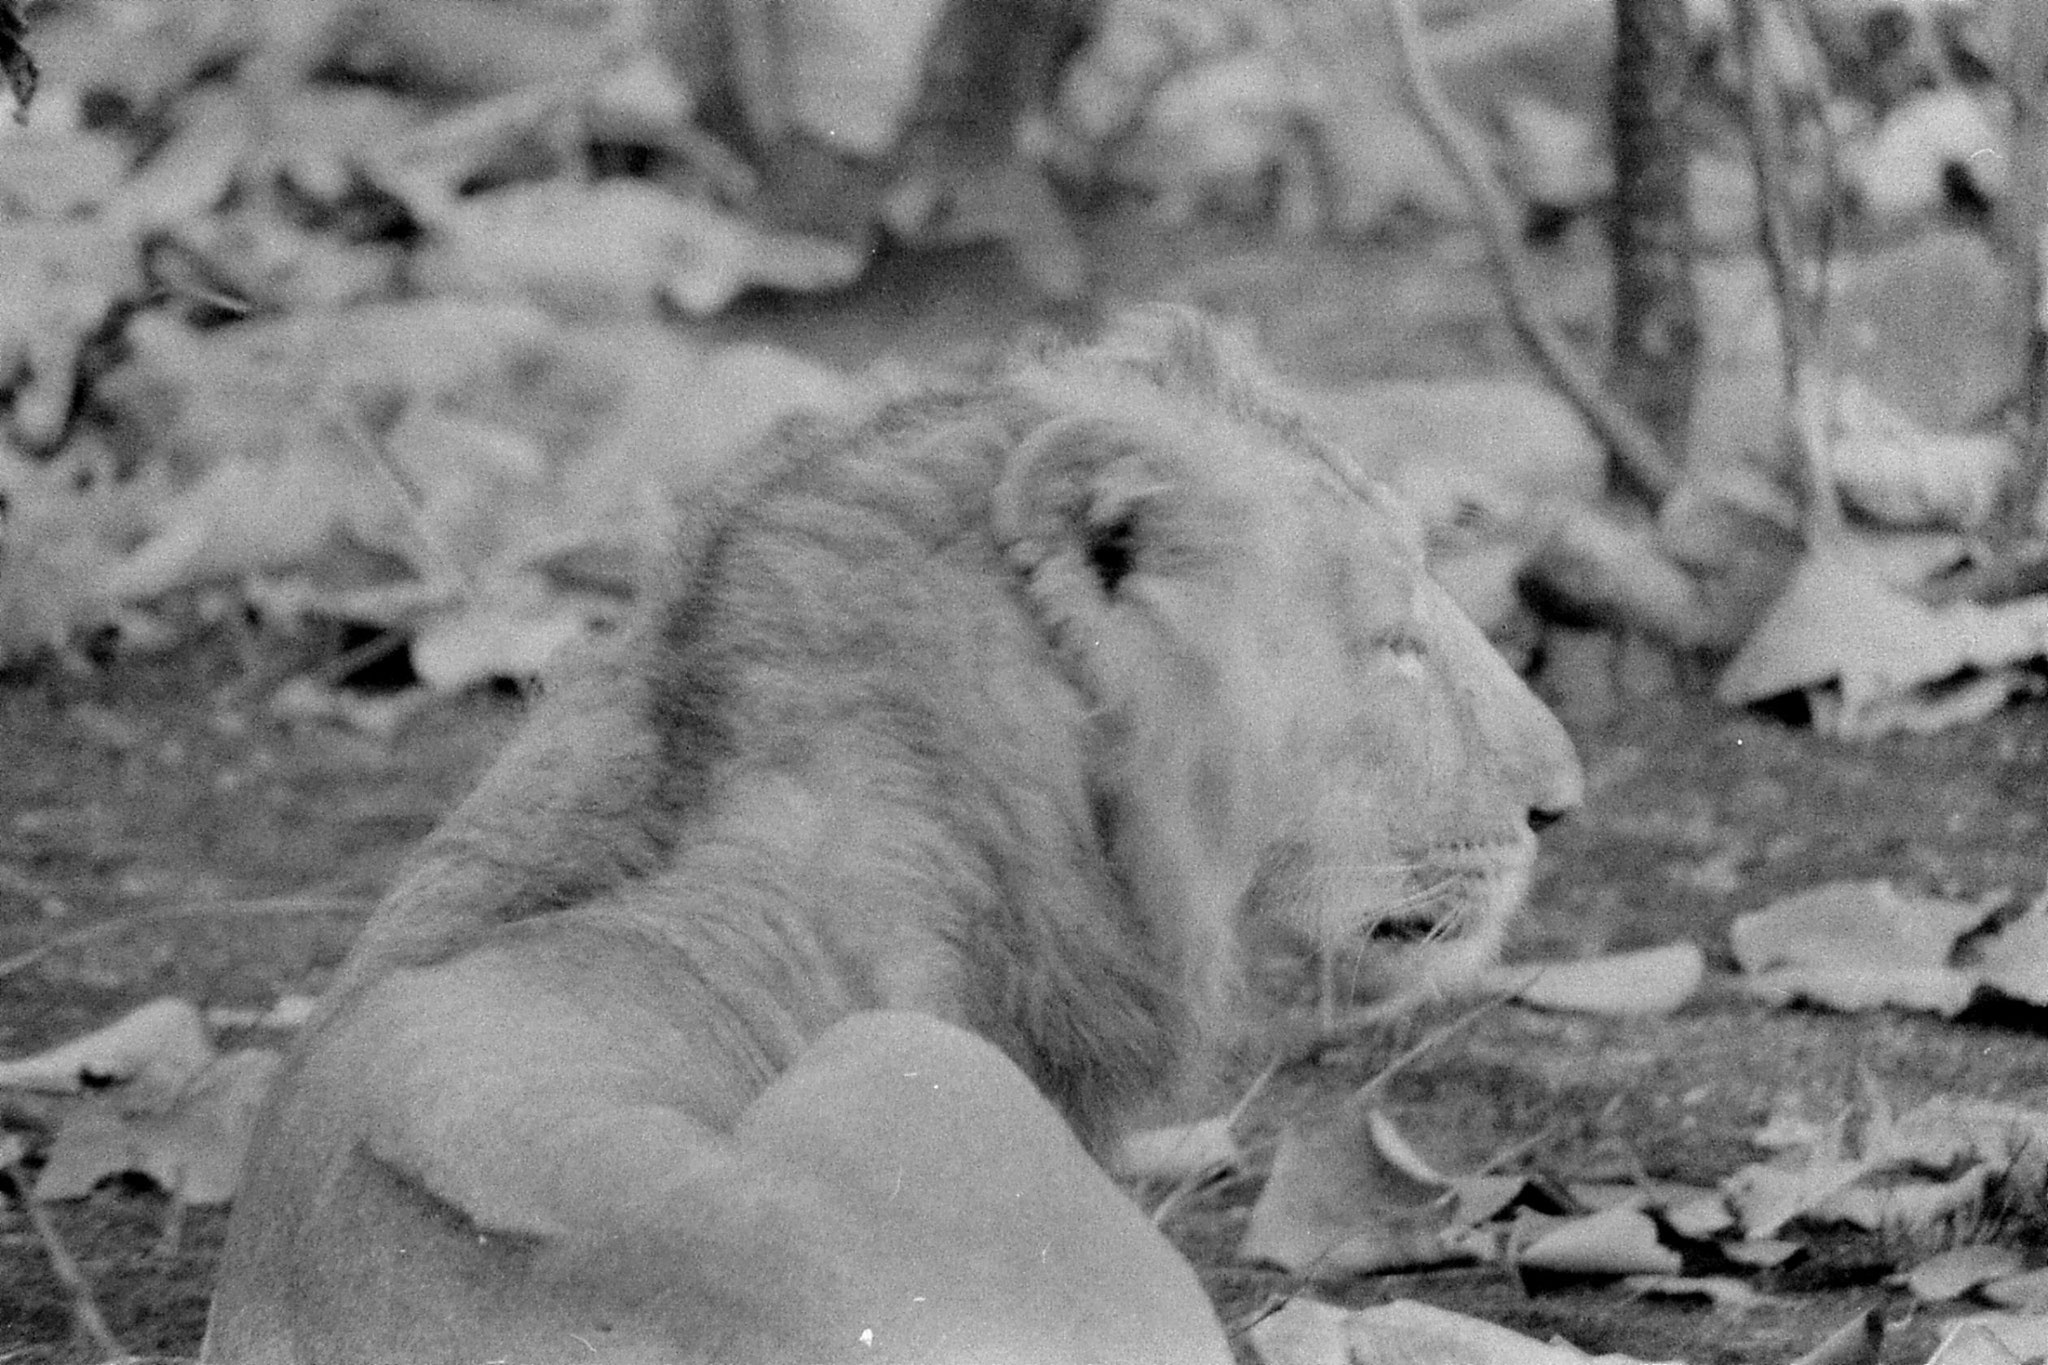 13/12/89: 5: Lions early morning